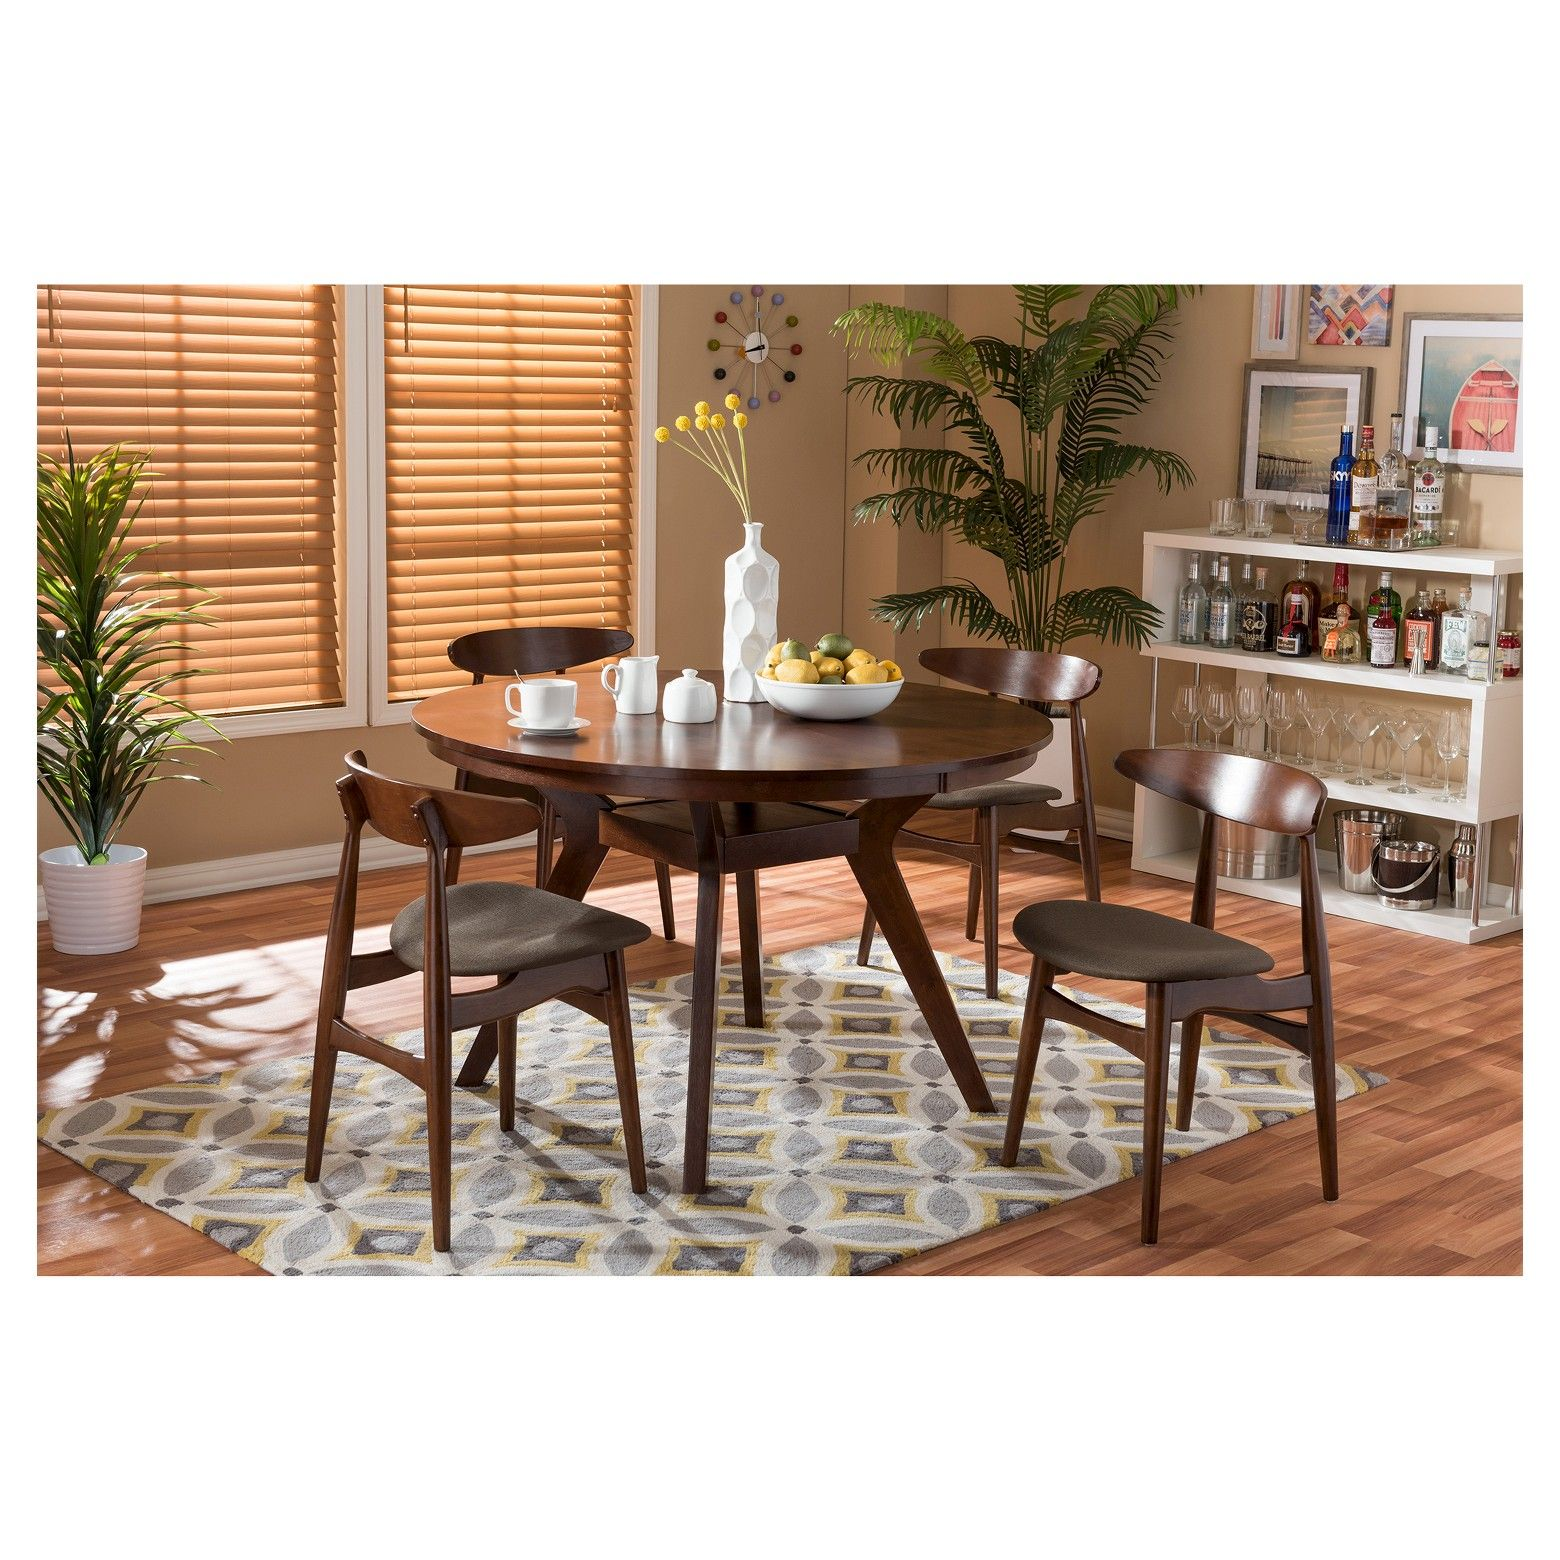 Flamingo Mid Century 5 Piece Dining Set Brown Walnut Gray